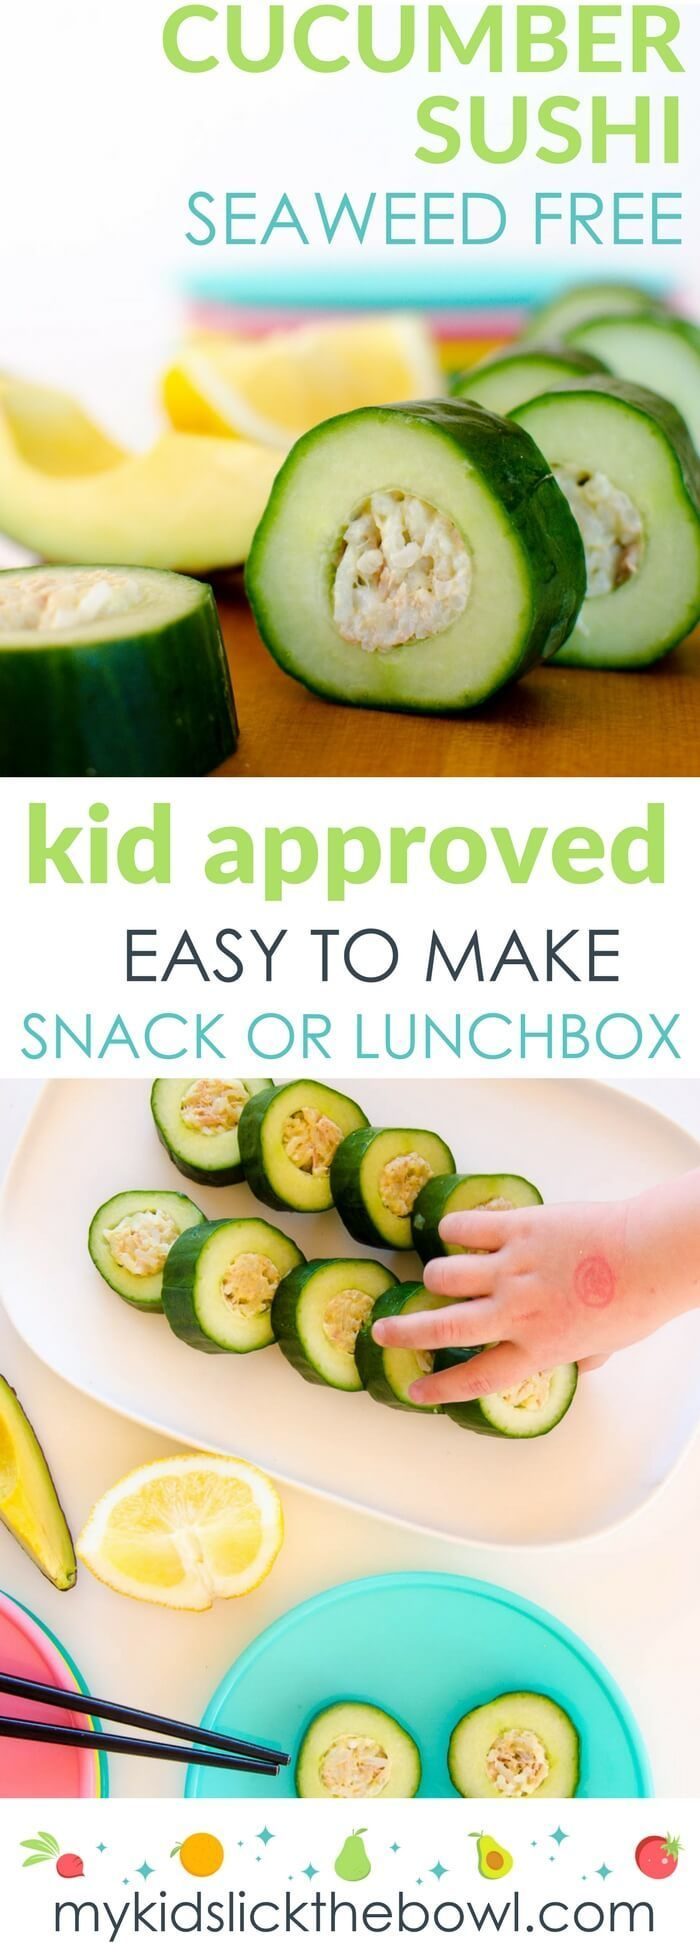 Cucumber sushi for kids, easy, healthy recipe to make homemade sushi with no seaweed. A fun snack or lunchbox item for kids. Turn your kids into sushi lovers